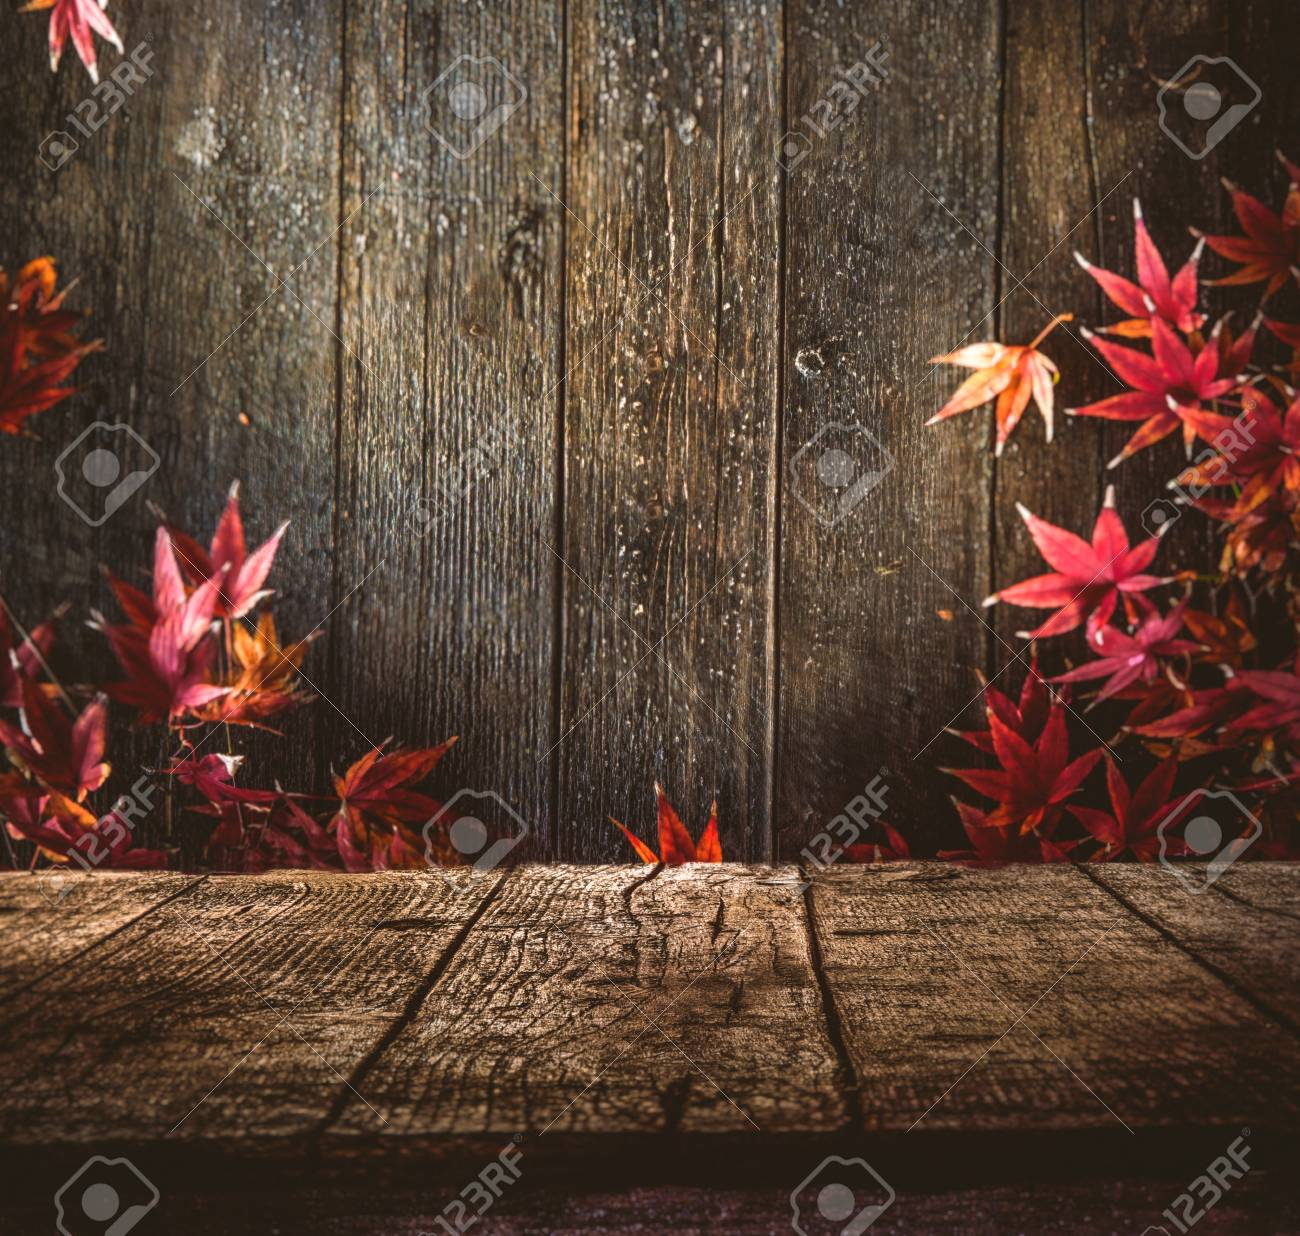 Wooden table. Autumn design with leaves and empty display. Space for your montage. Season fall background - 61520725